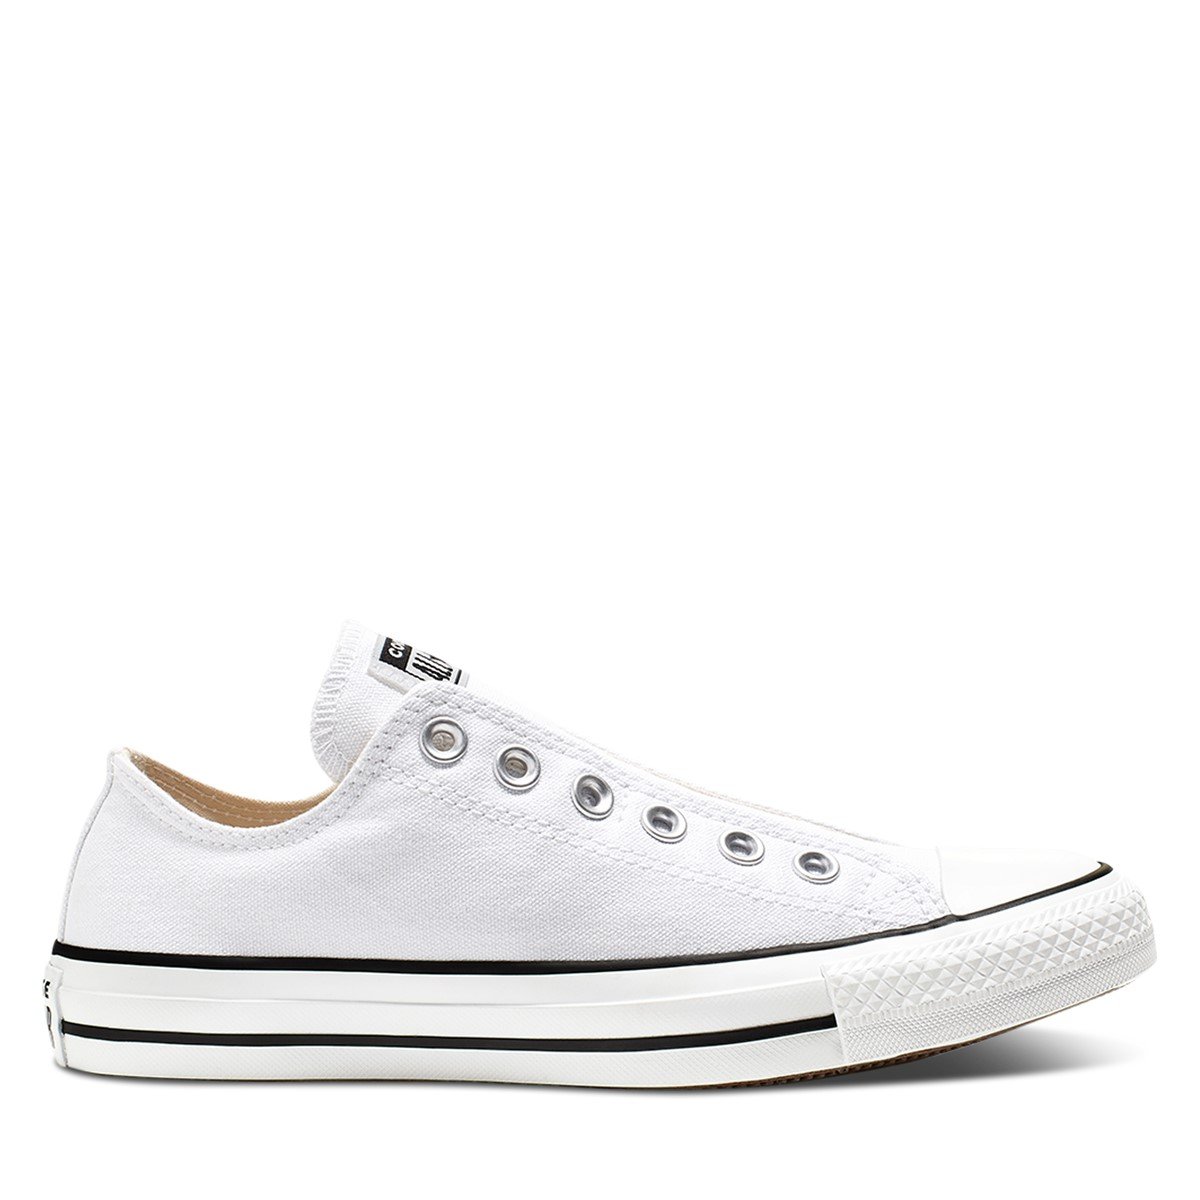 Men's Chuck Taylor All Star Slip-on Sneakers in White